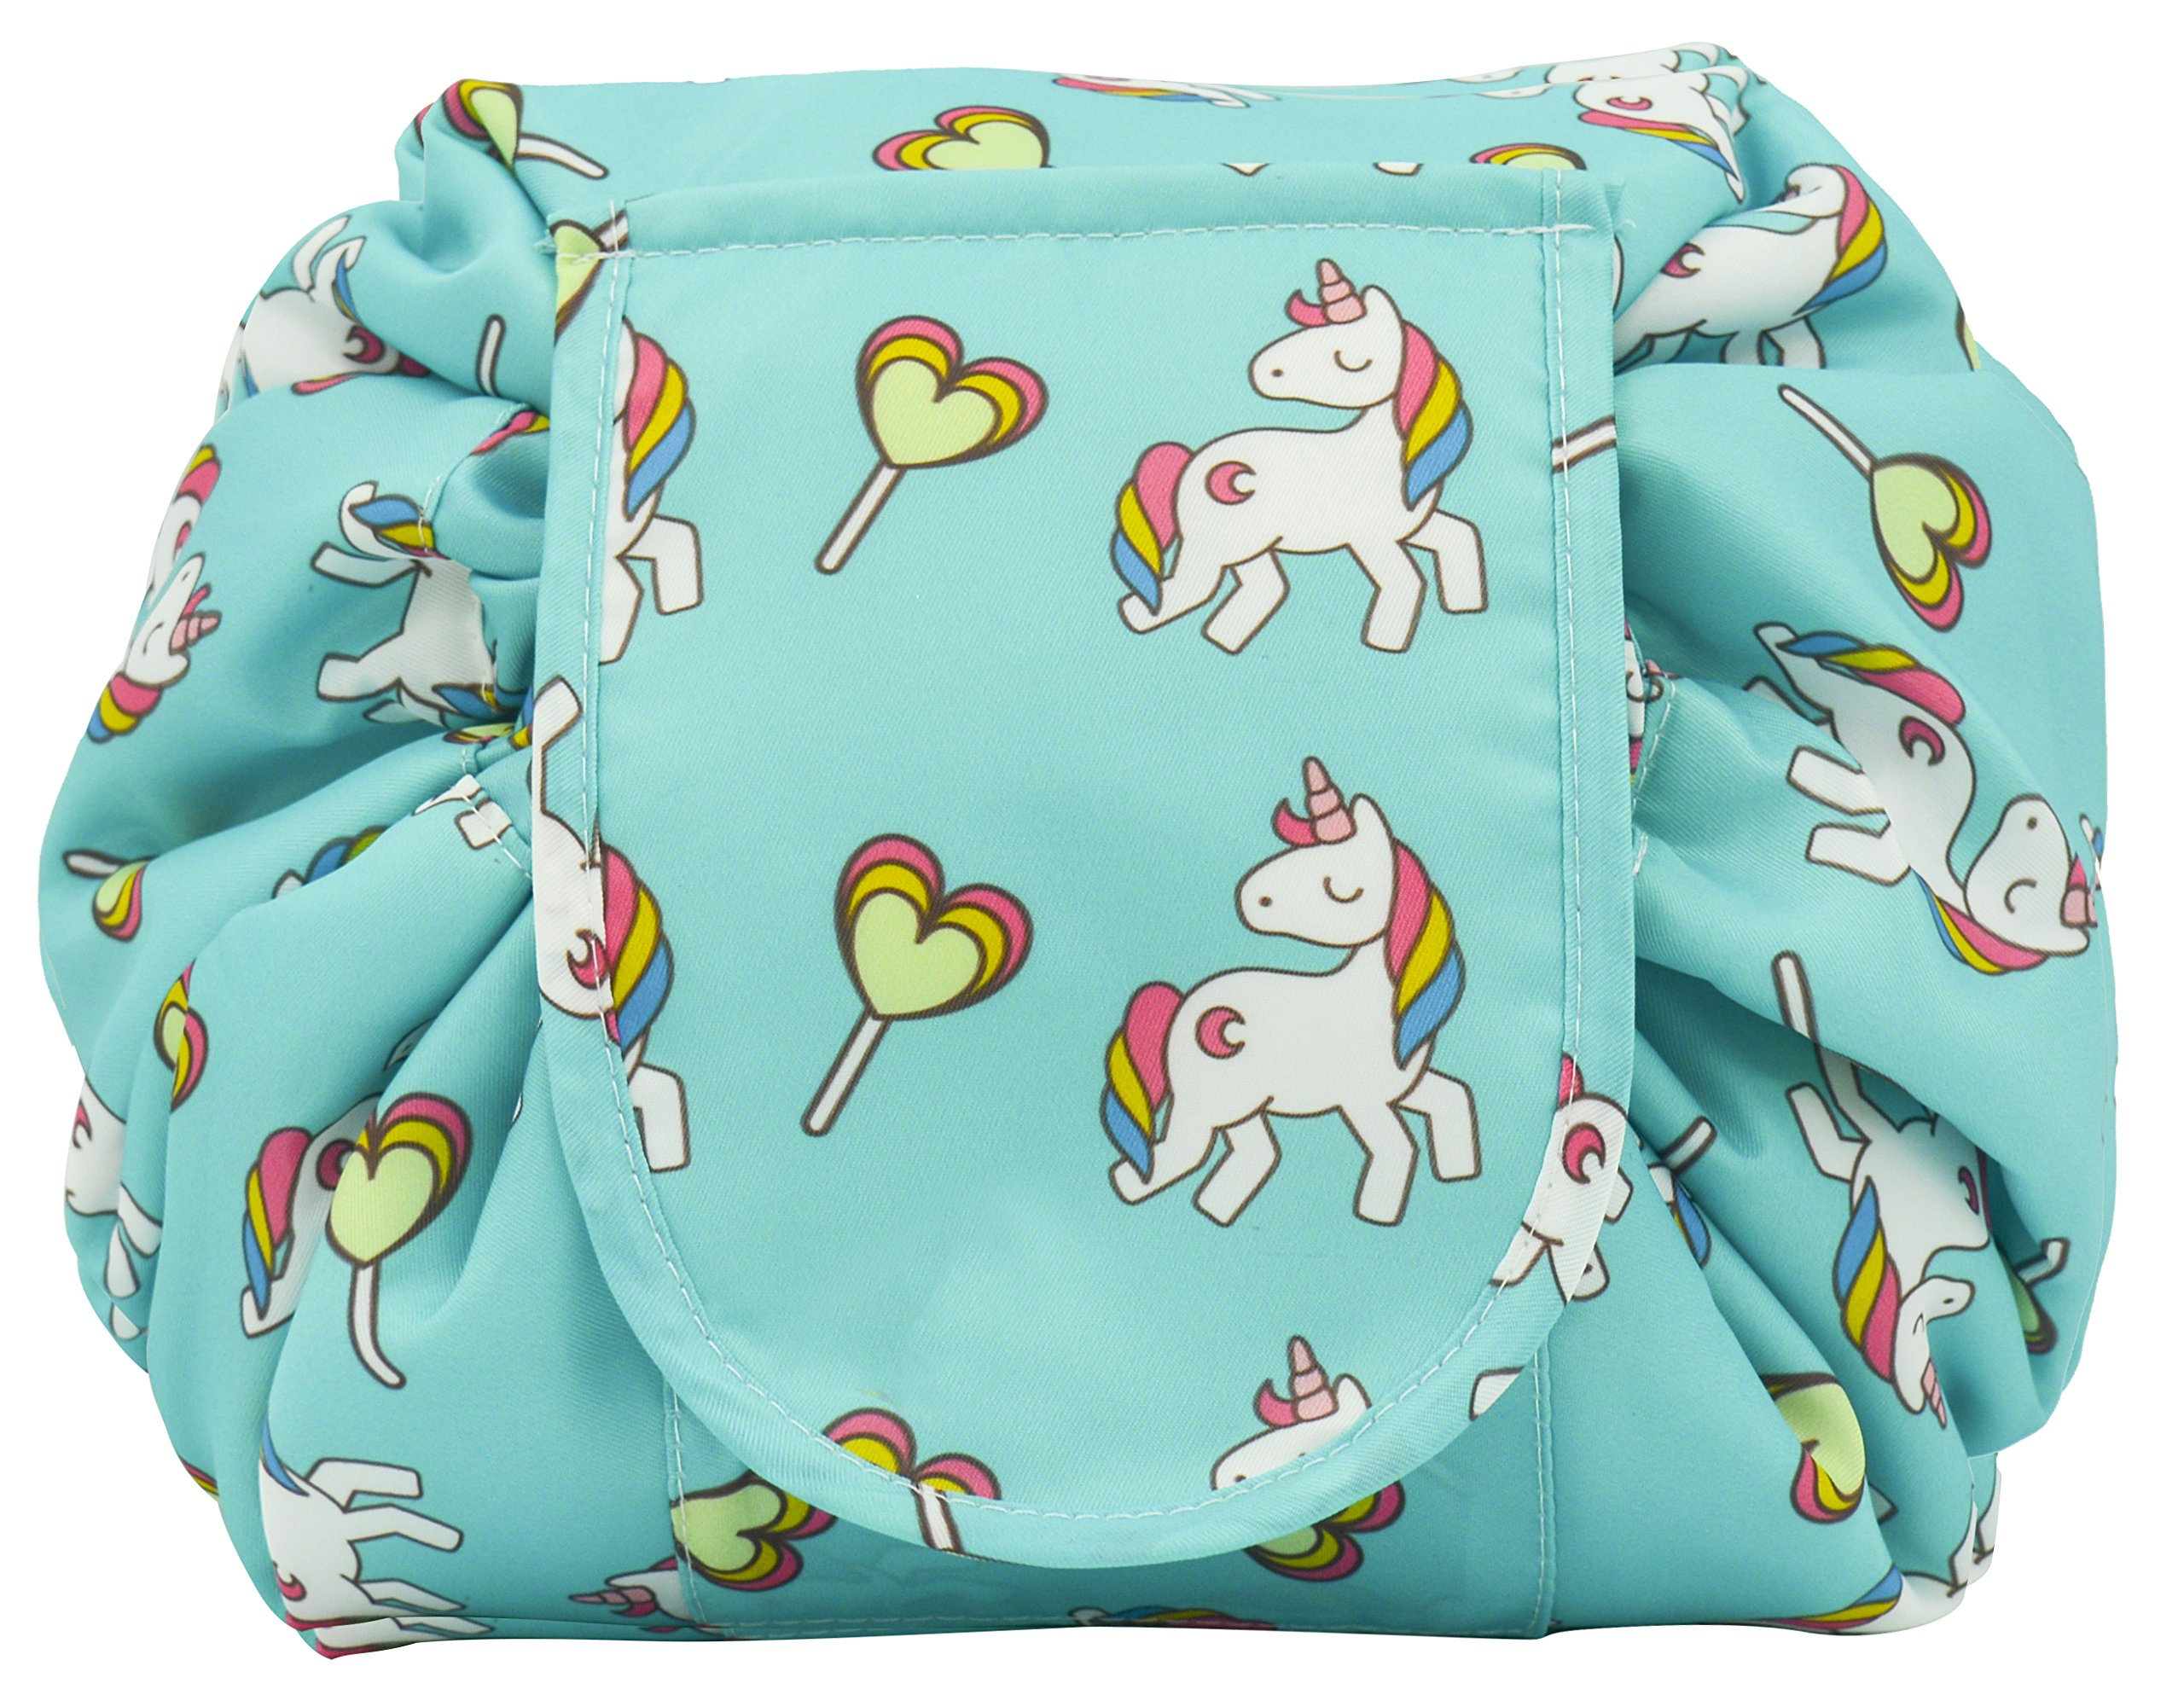 Portable Drawstring Cosmetic Bag Large Capacity Lazy Travel Makeup Pouch magic Toiletry Bag for Womens Girls (BlueUnicorn)